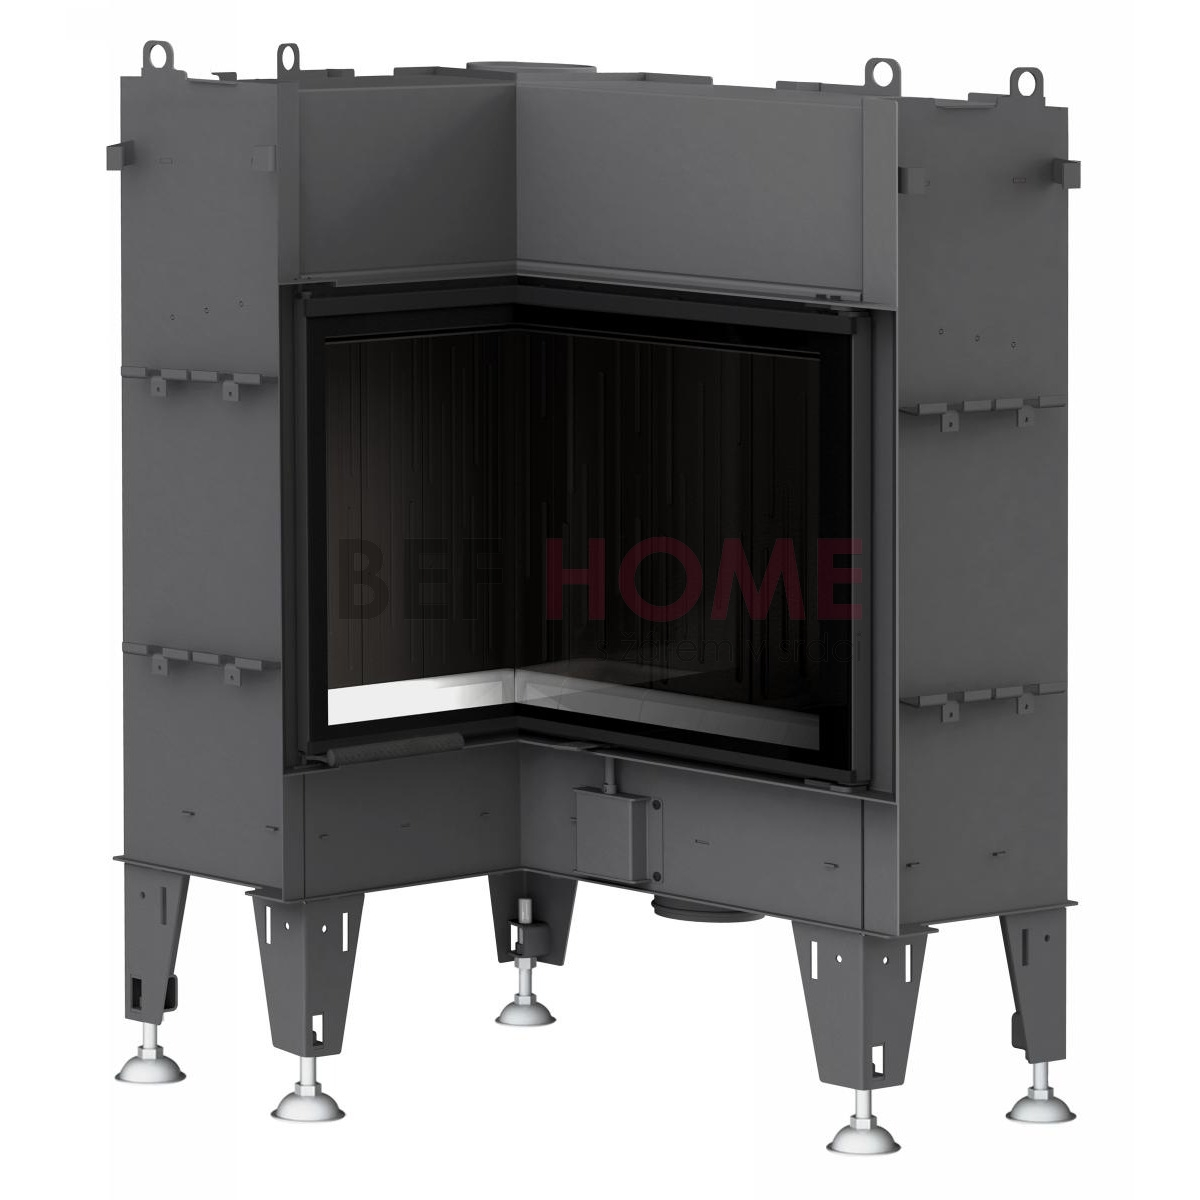 bef flat 6 l warmluft kamineinsatz eckkamin thermoworld ofenshop. Black Bedroom Furniture Sets. Home Design Ideas